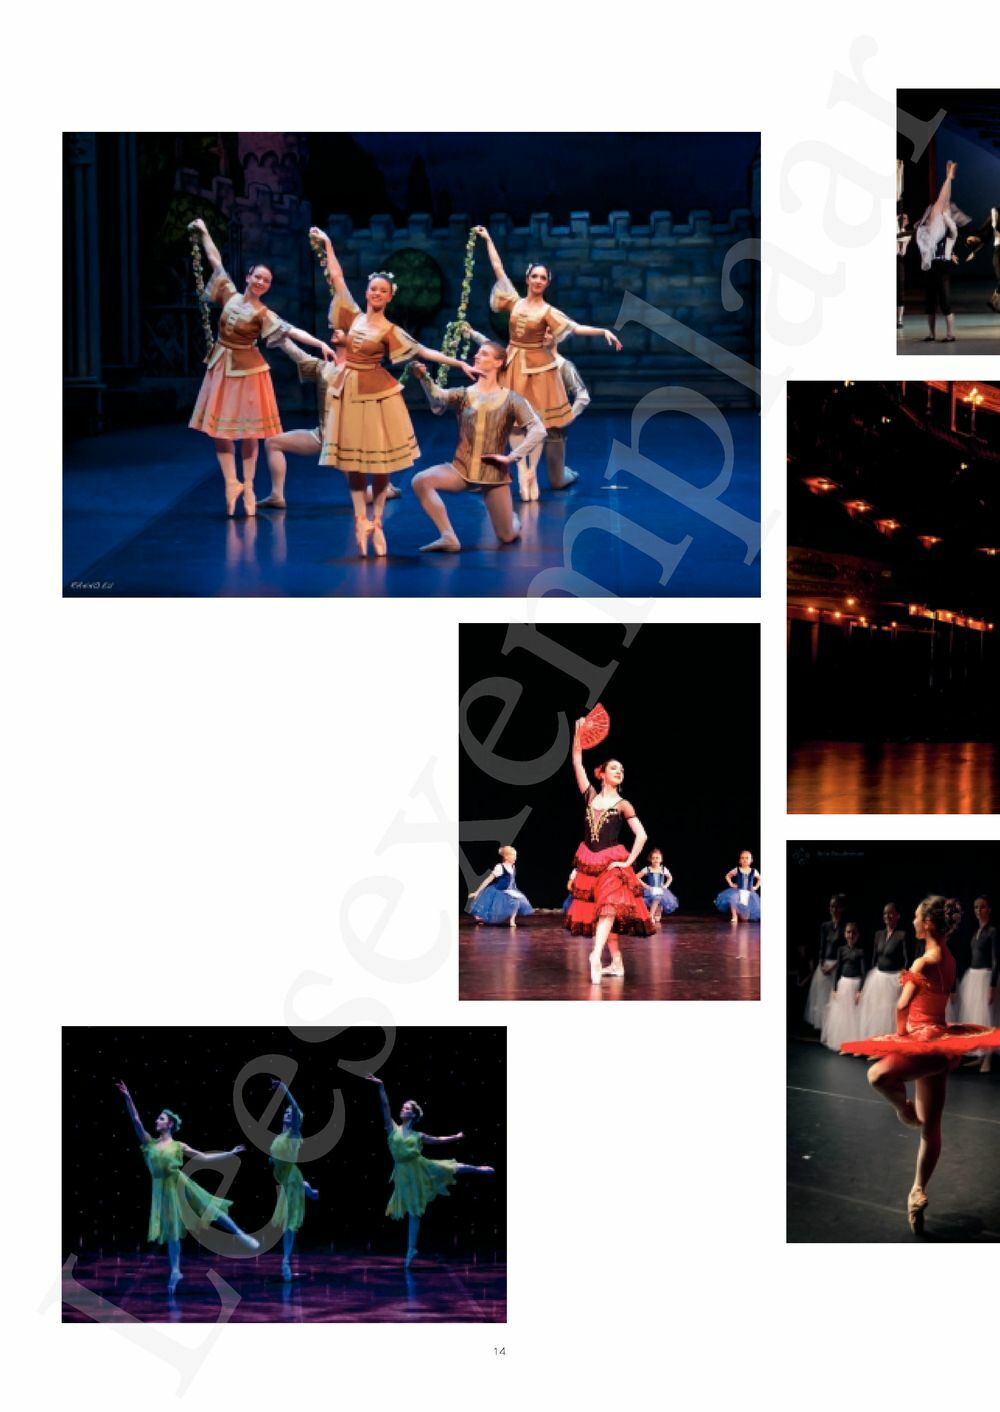 Preview: Ballet workout